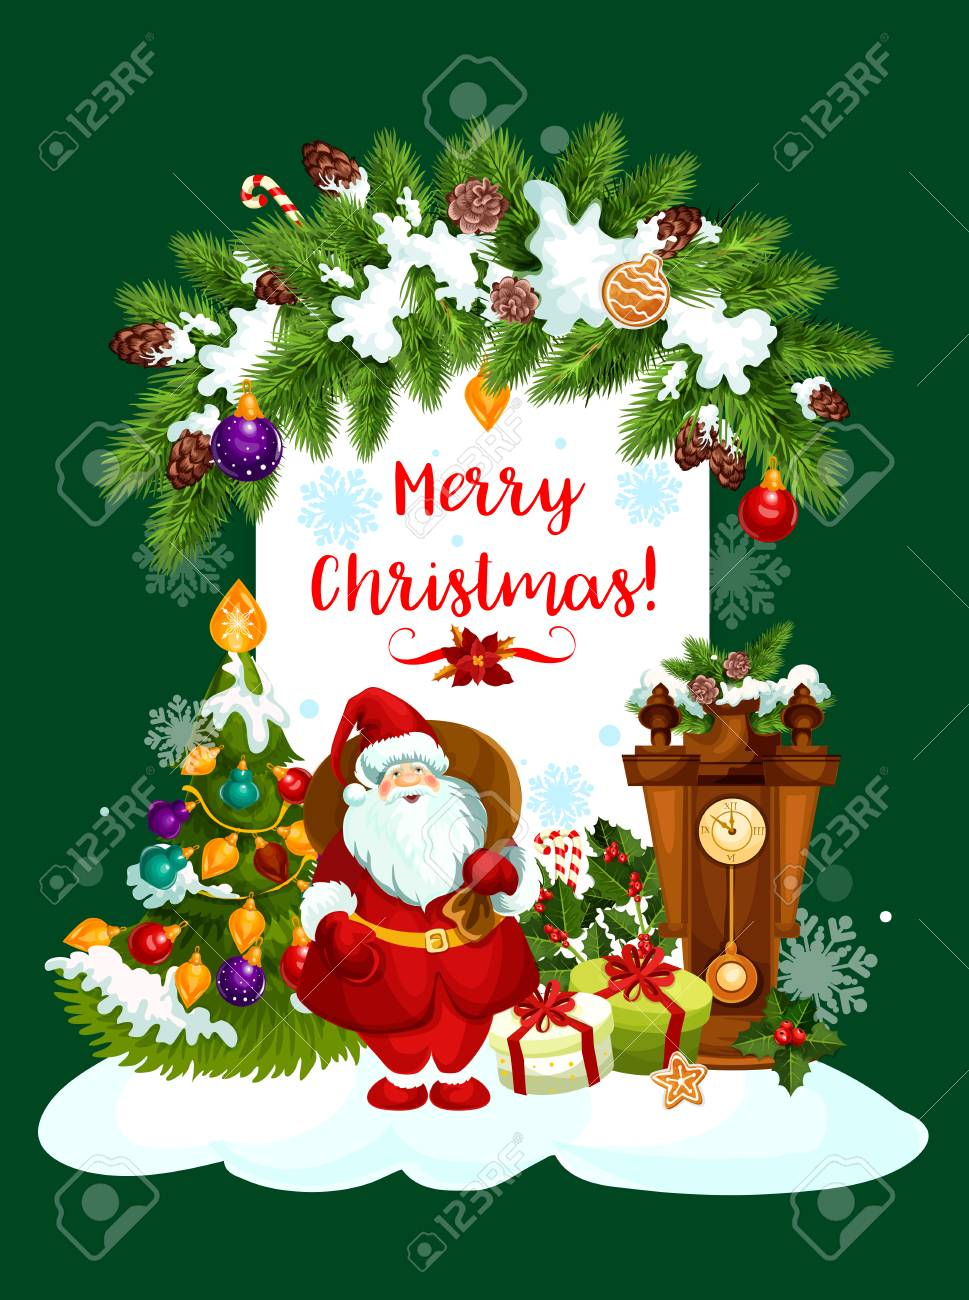 Christmas Greeting Images.Merry Christmas Greeting Card Design Of Santa Gifts And Christmas